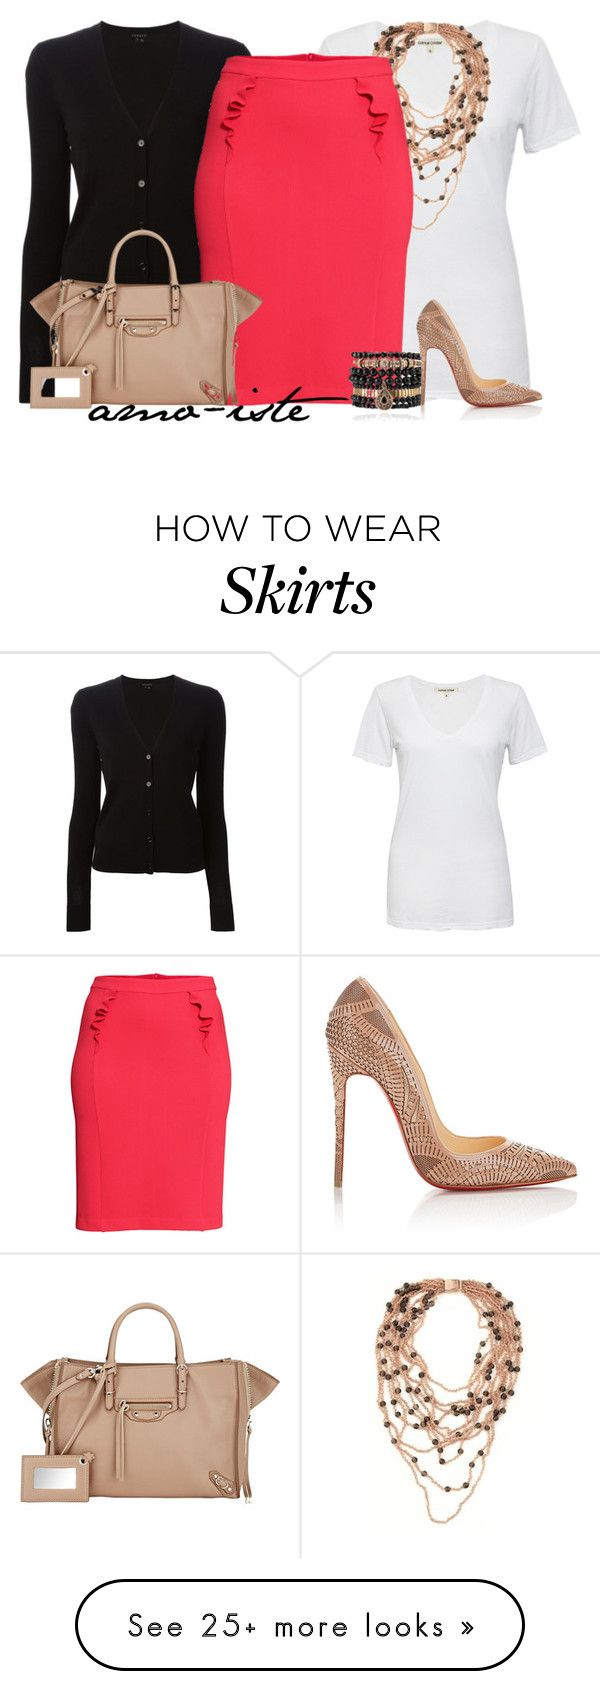 """""""H&M Skirt"""" by amo-iste on Polyvore featuring Cotton Citizen, Theory, PESAVENTO, H&M, Balenciaga, Samantha Wills and Christian Louboutin"""